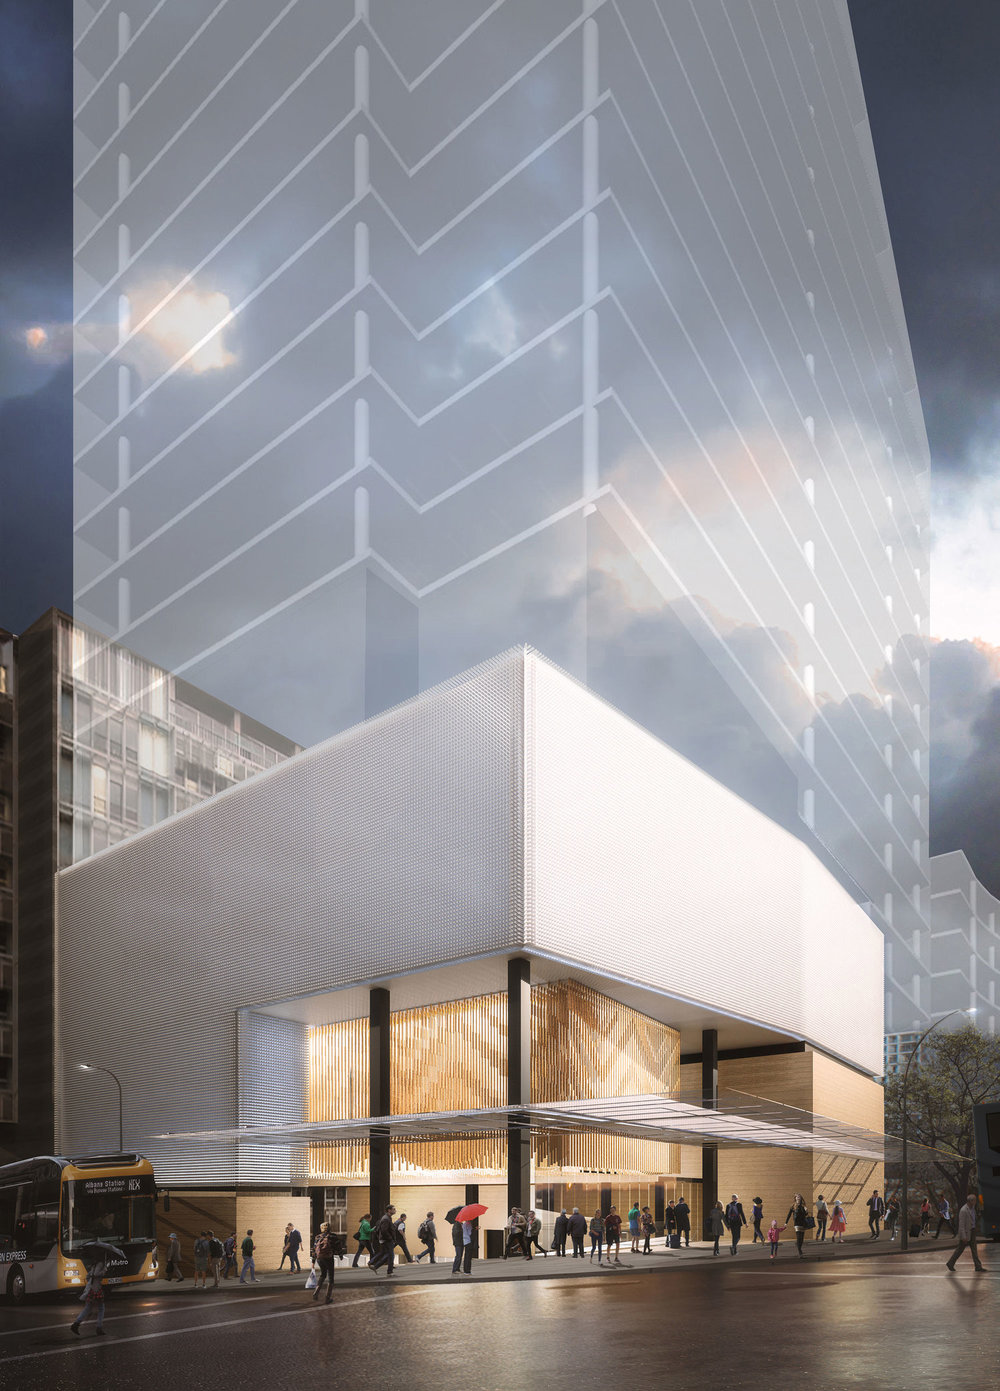 Render of Aotea station threshold exterior with potential for building above station entrance